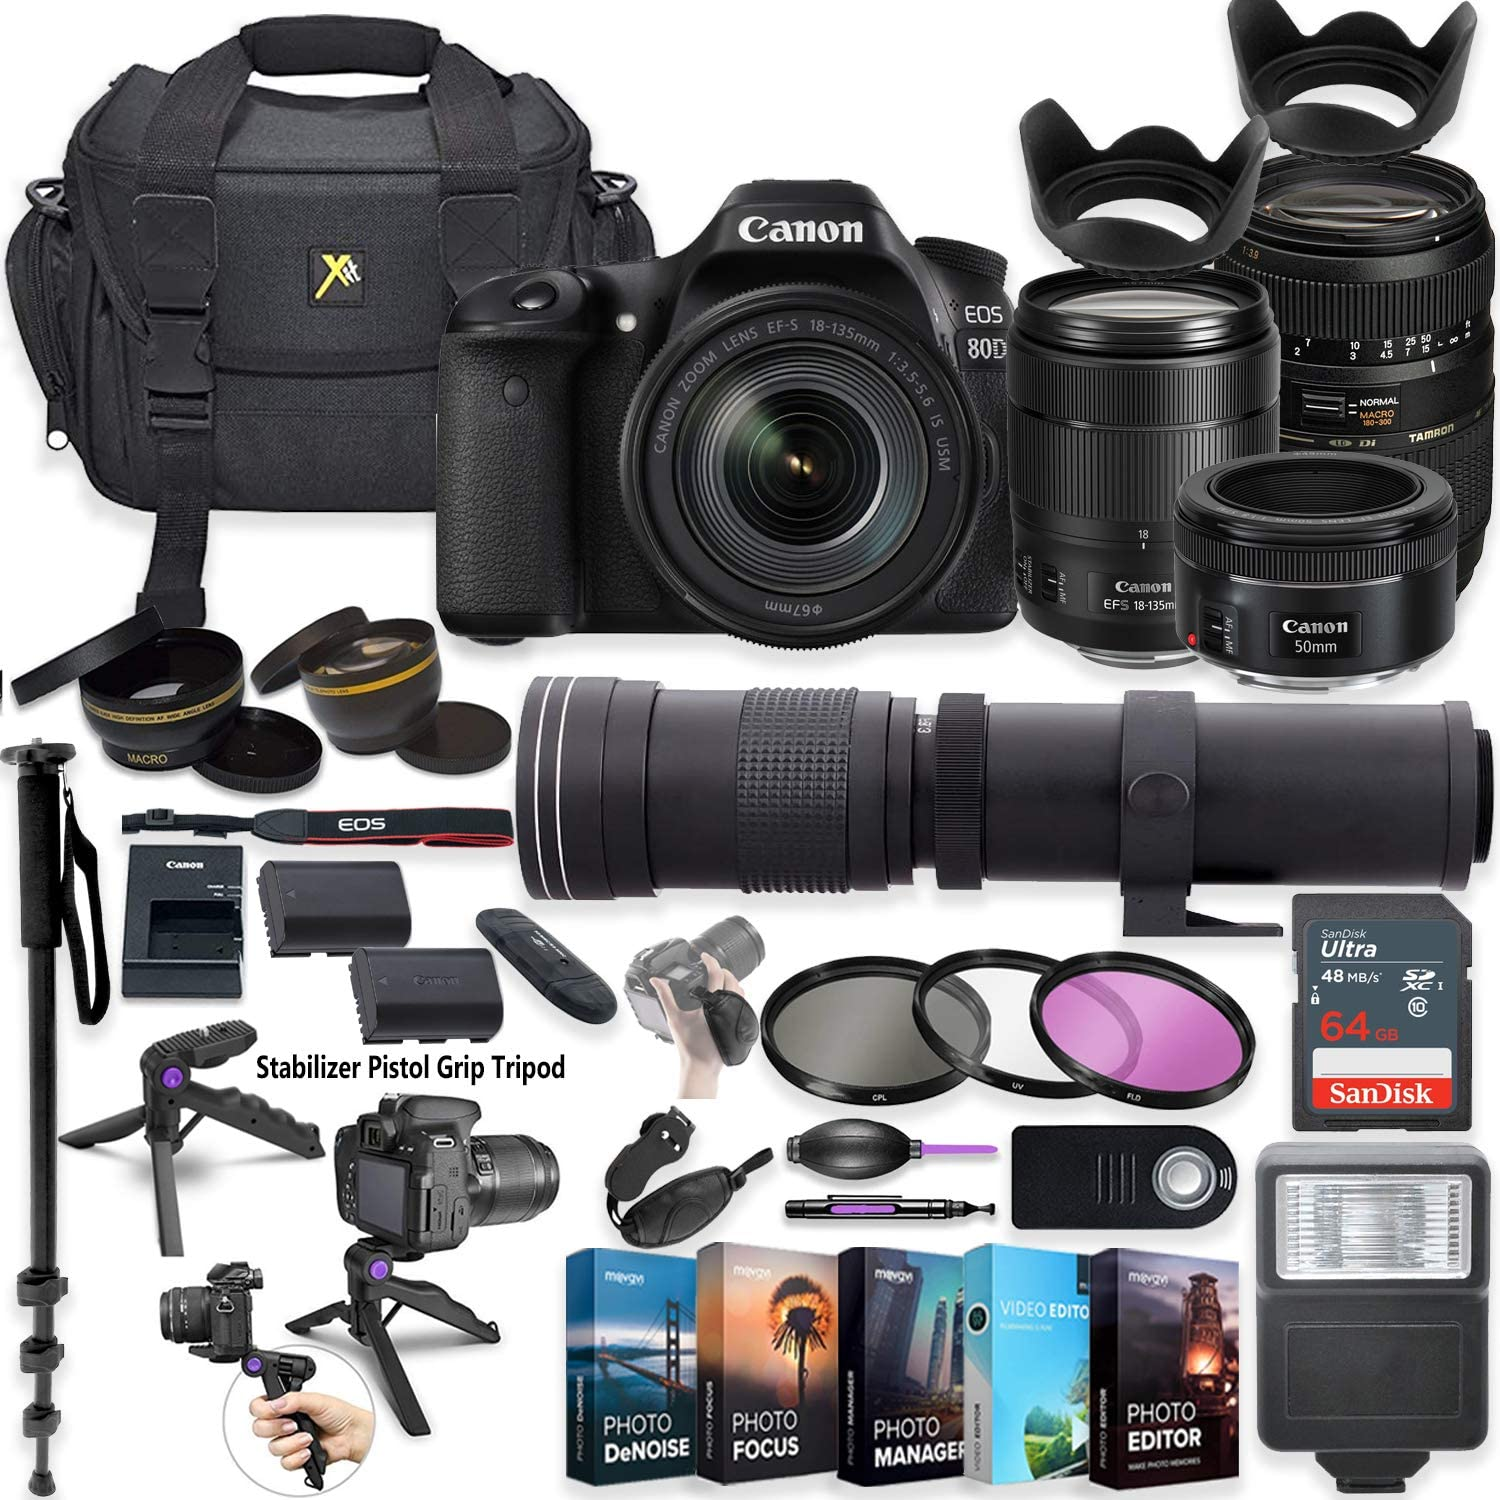 2.2X HD TELEPHOTO ZOOM LENS FOR Canon EOS 80D DSLR WITH 18-135mm Lens Basic Kit